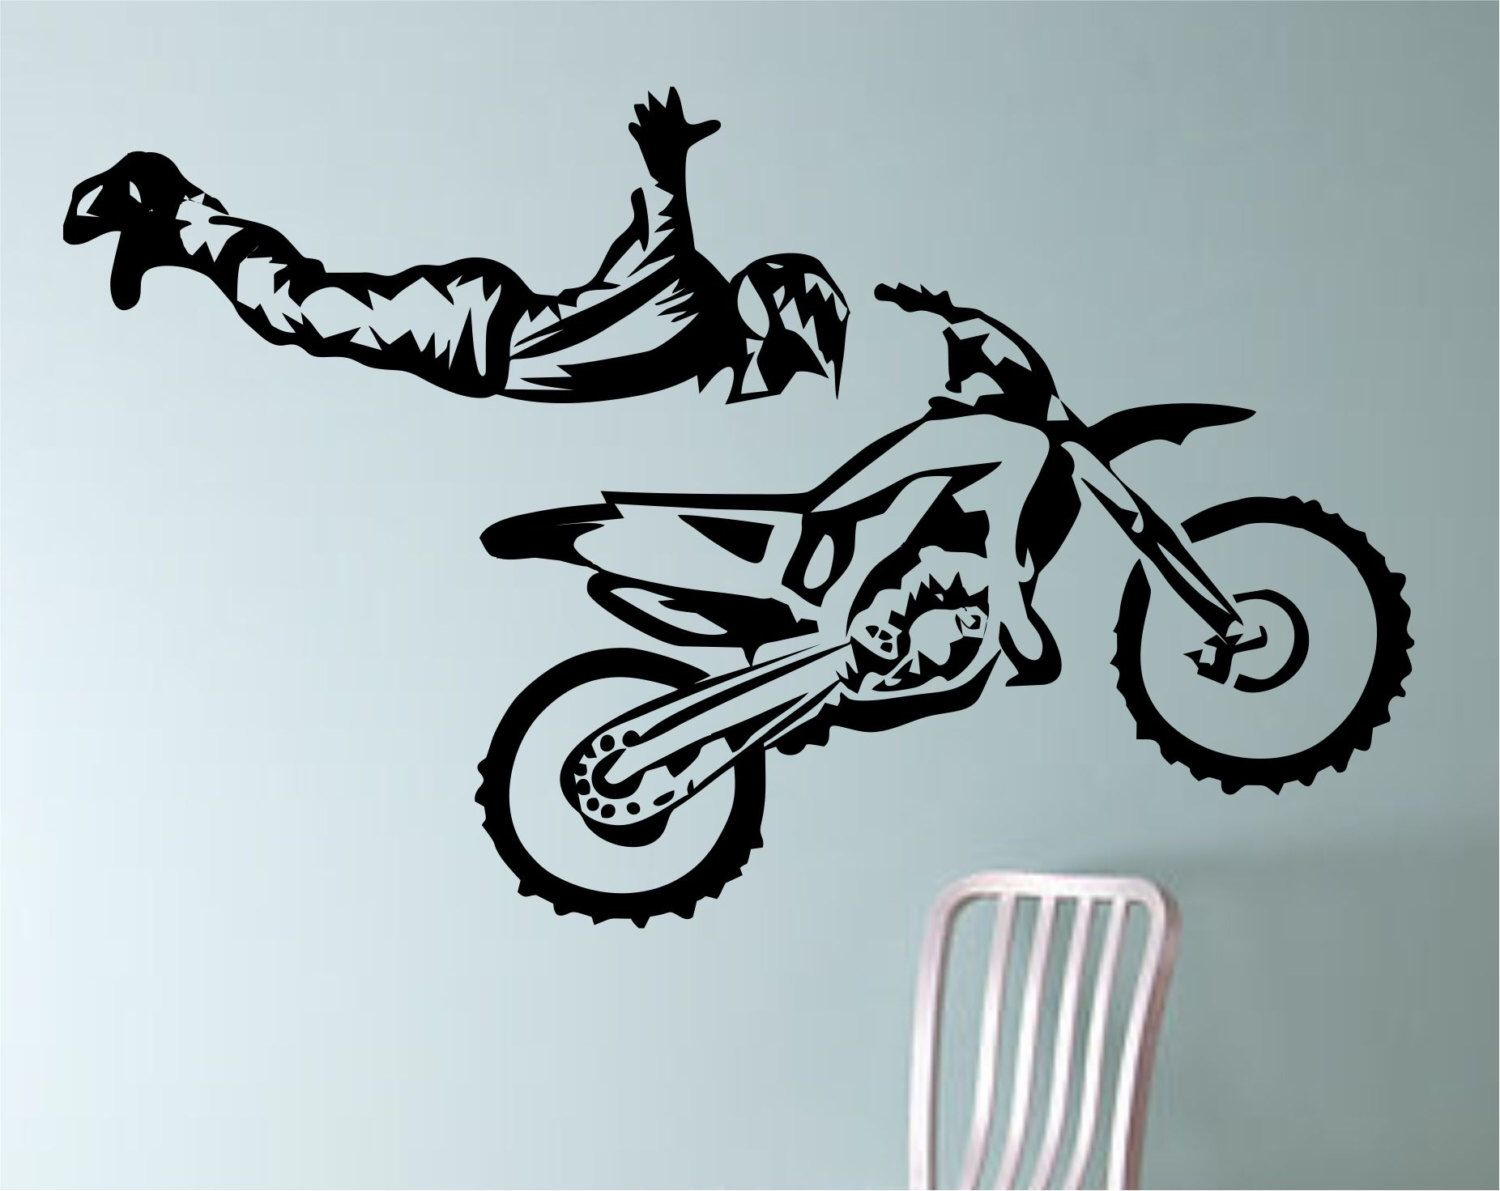 Design a bike sticker - Dirt Bike Biker Superman Trick Motorcycle Vinyl Wall Decal Sticker Art Decor Bedroom Design Mural Racing